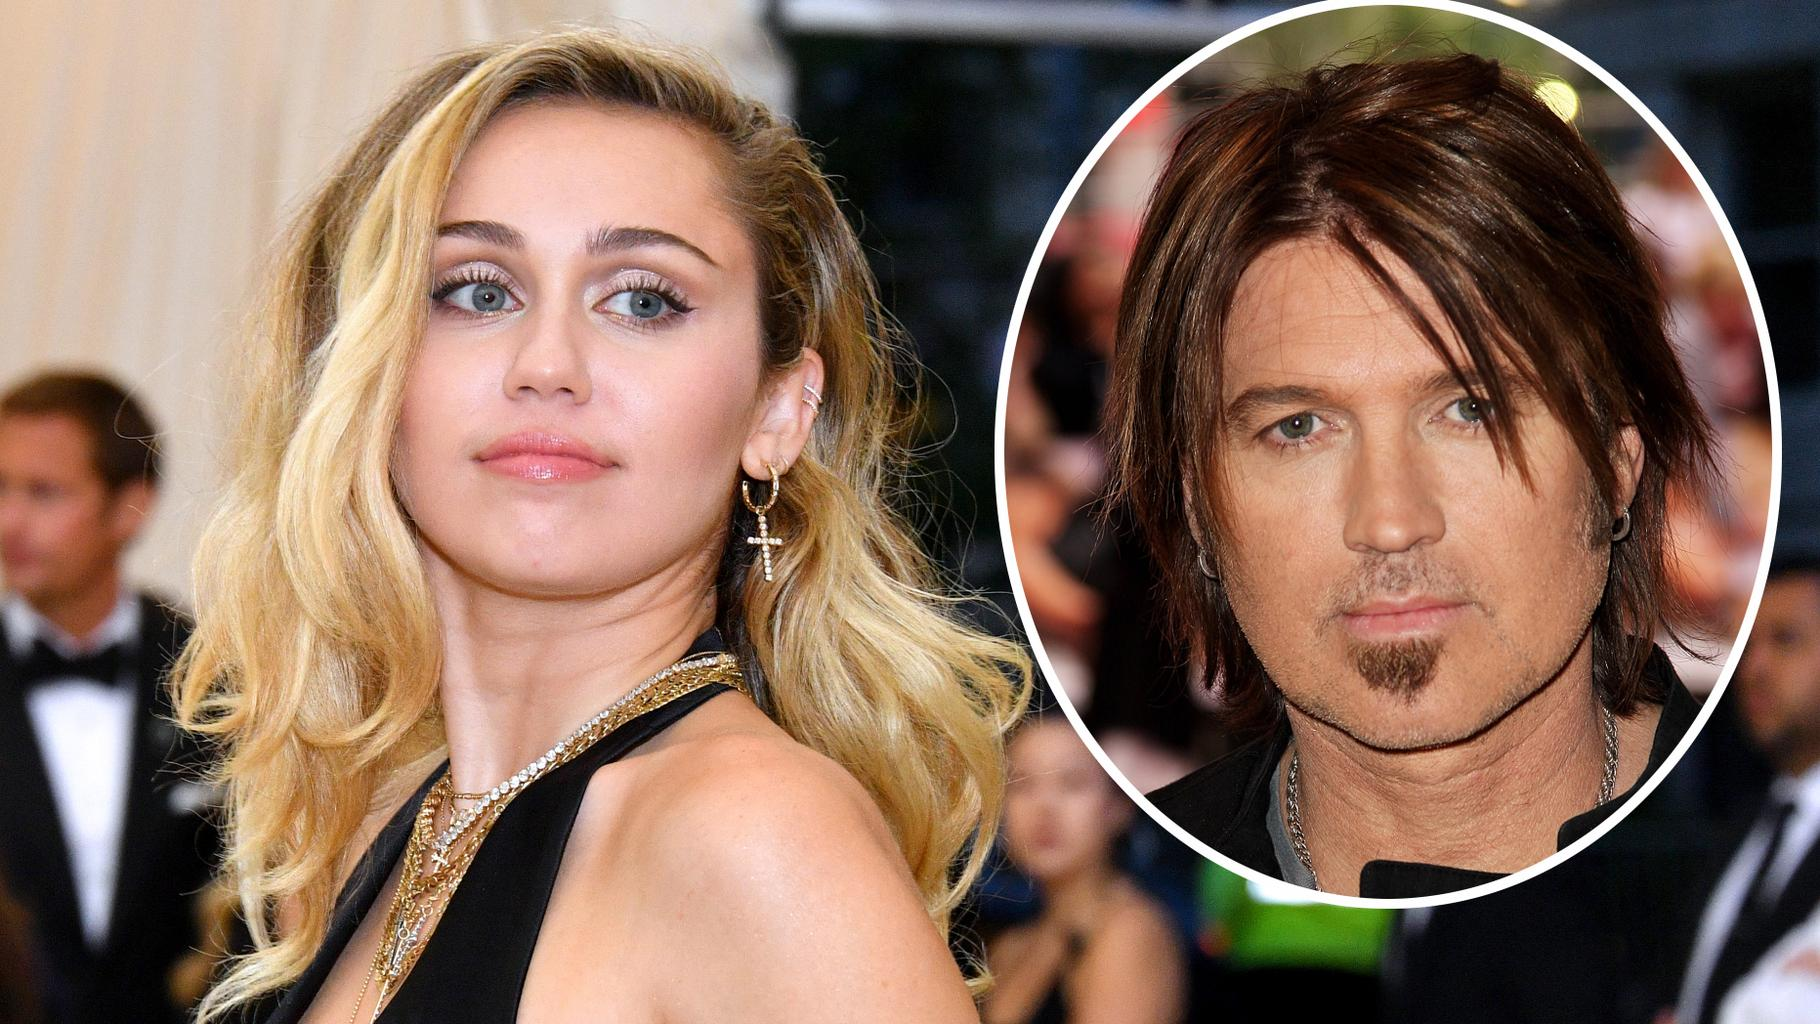 Miley Cyrus Shows Off New Mullet Hairstyle And She Looks Just Like Her Dad Billy Ray Celebrity Heat